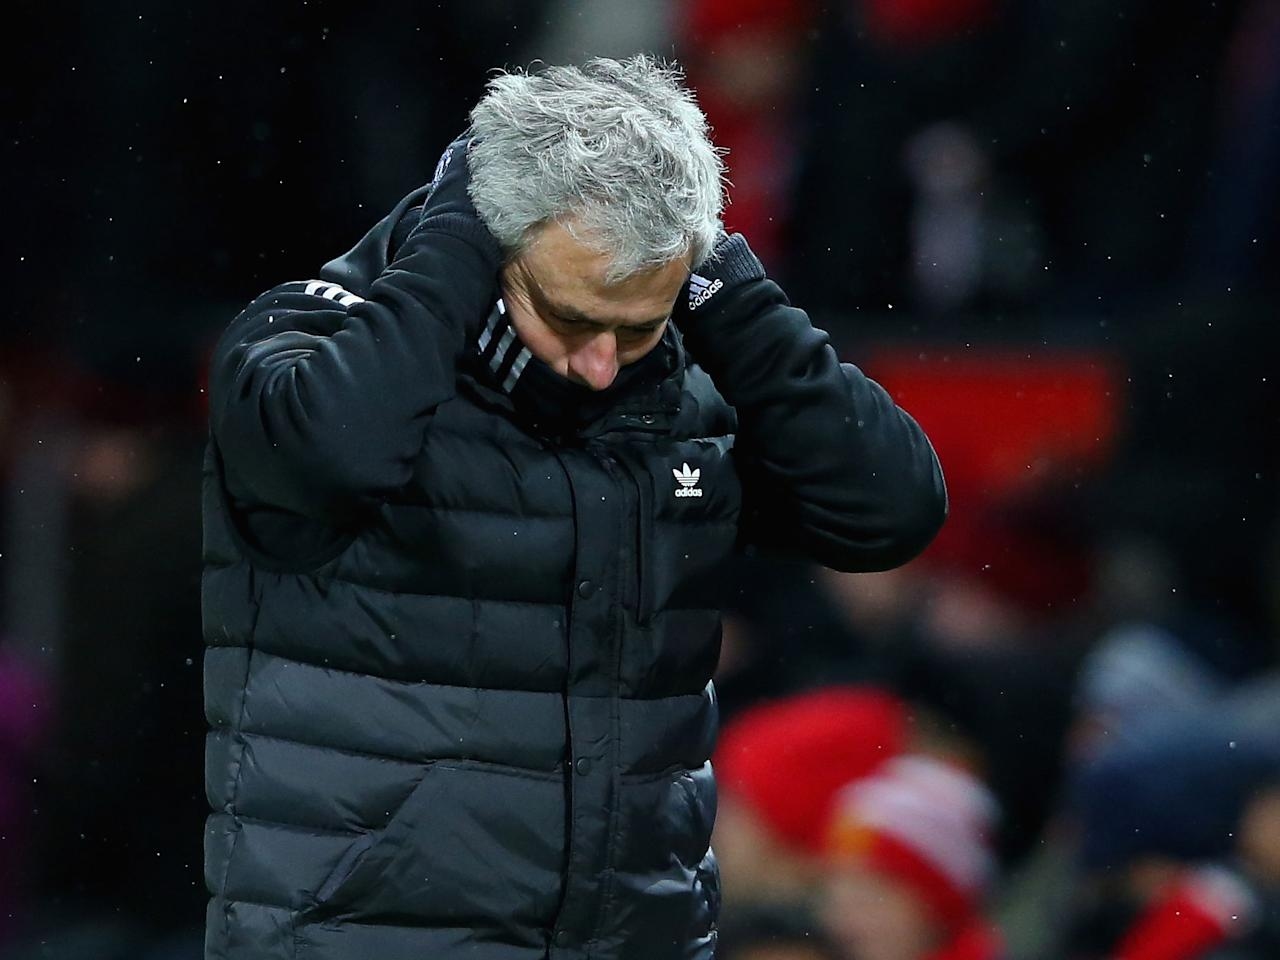 Jose Mourinho hits out at Manchester United players for lack of 'personality, class and desire' after Brighton win